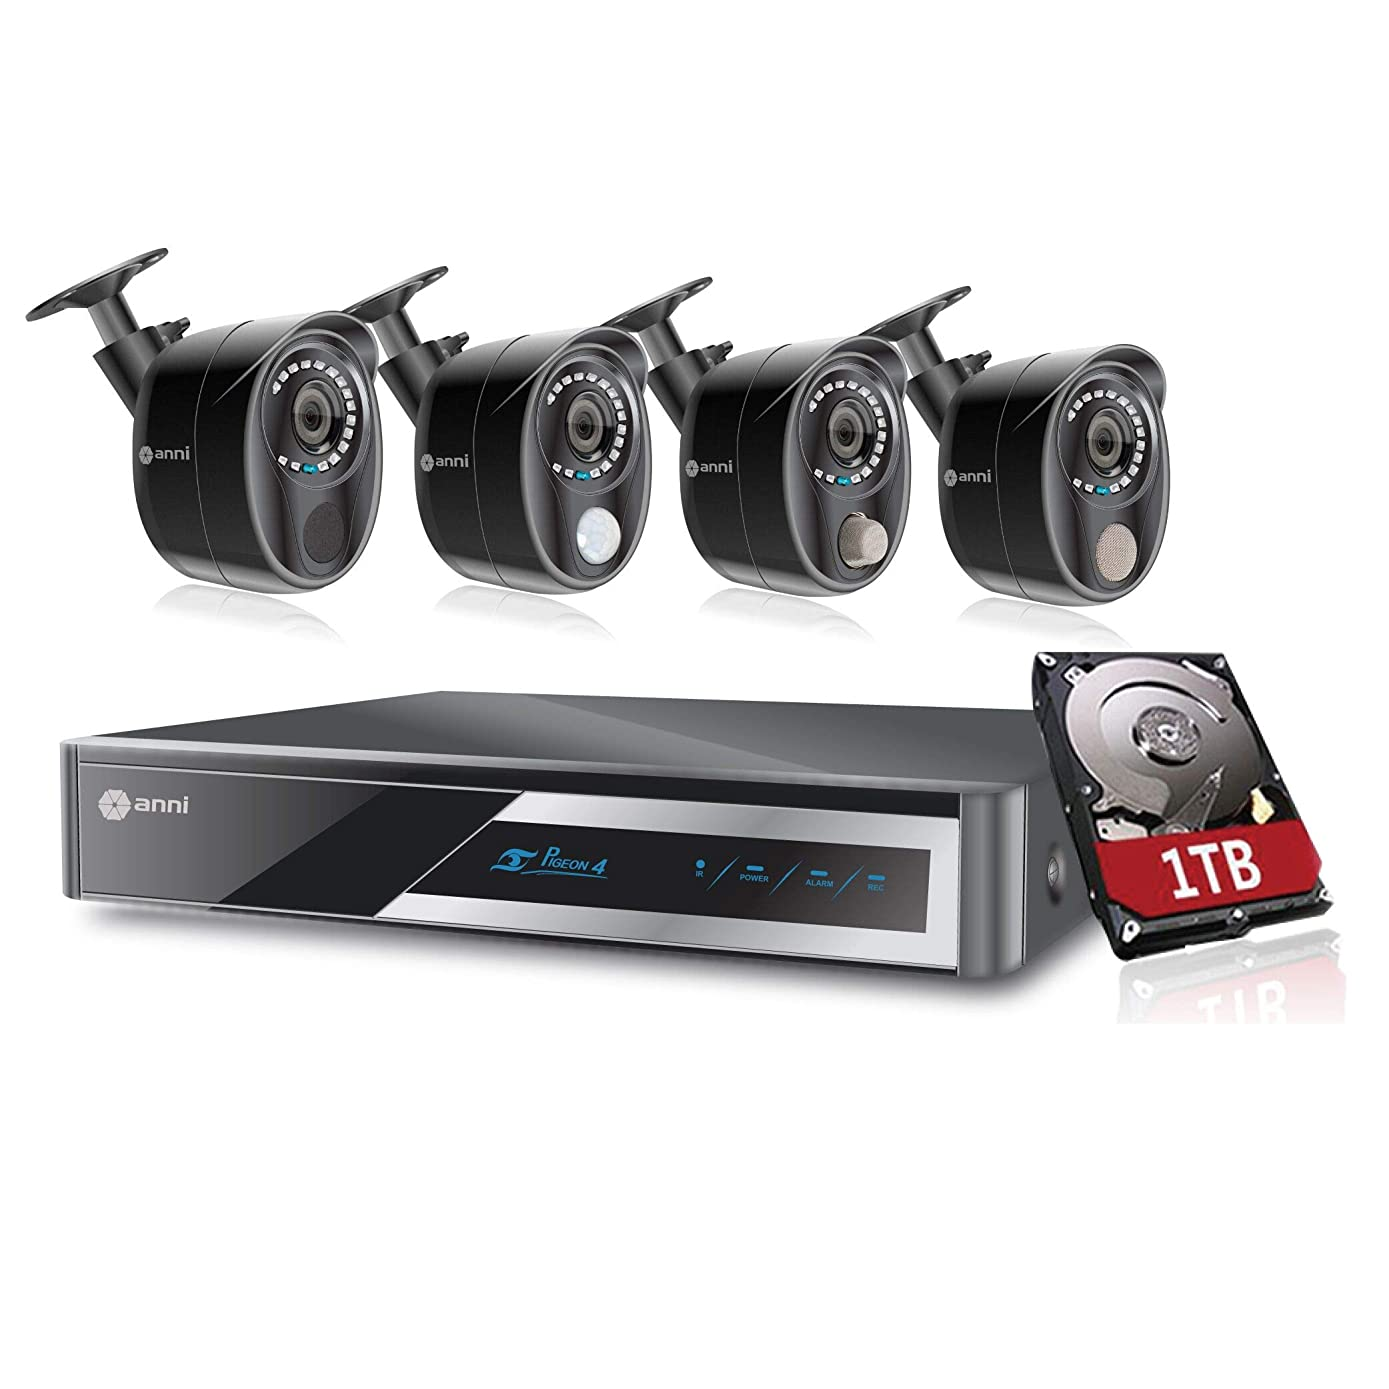 Anni 1080N Digital Video Recorder, CCTV Video Monitoring Surveillance DVR Kit with 1080p Wired Infrared Cameras, Built-in Gas Sensor Alarm, PIR Body Detection, Siren Sounds (8CH 4CAM & 1TB)